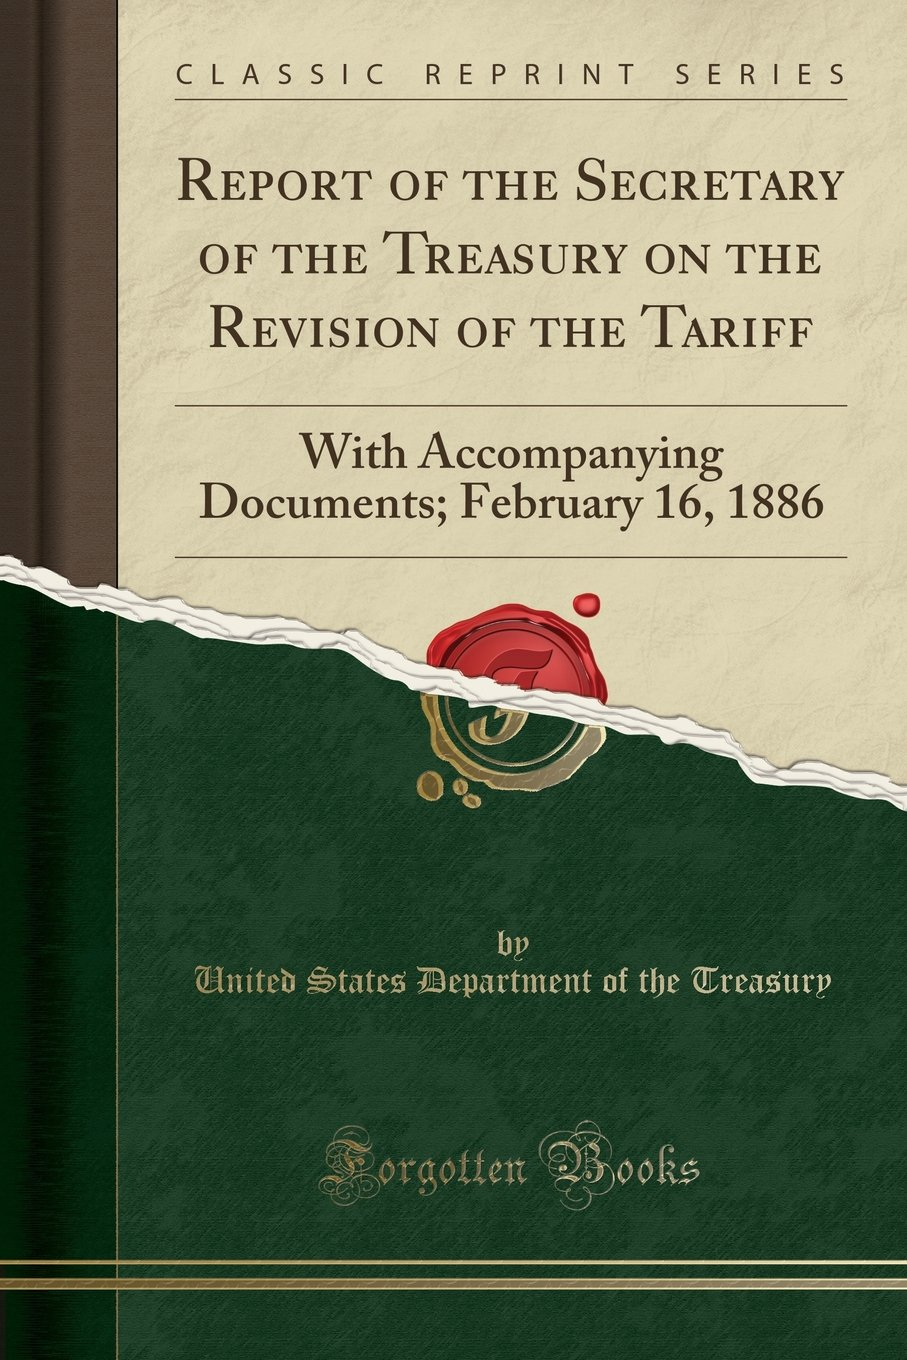 Read Online Report of the Secretary of the Treasury on the Revision of the Tariff: With Accompanying Documents; February 16, 1886 (Classic Reprint) PDF